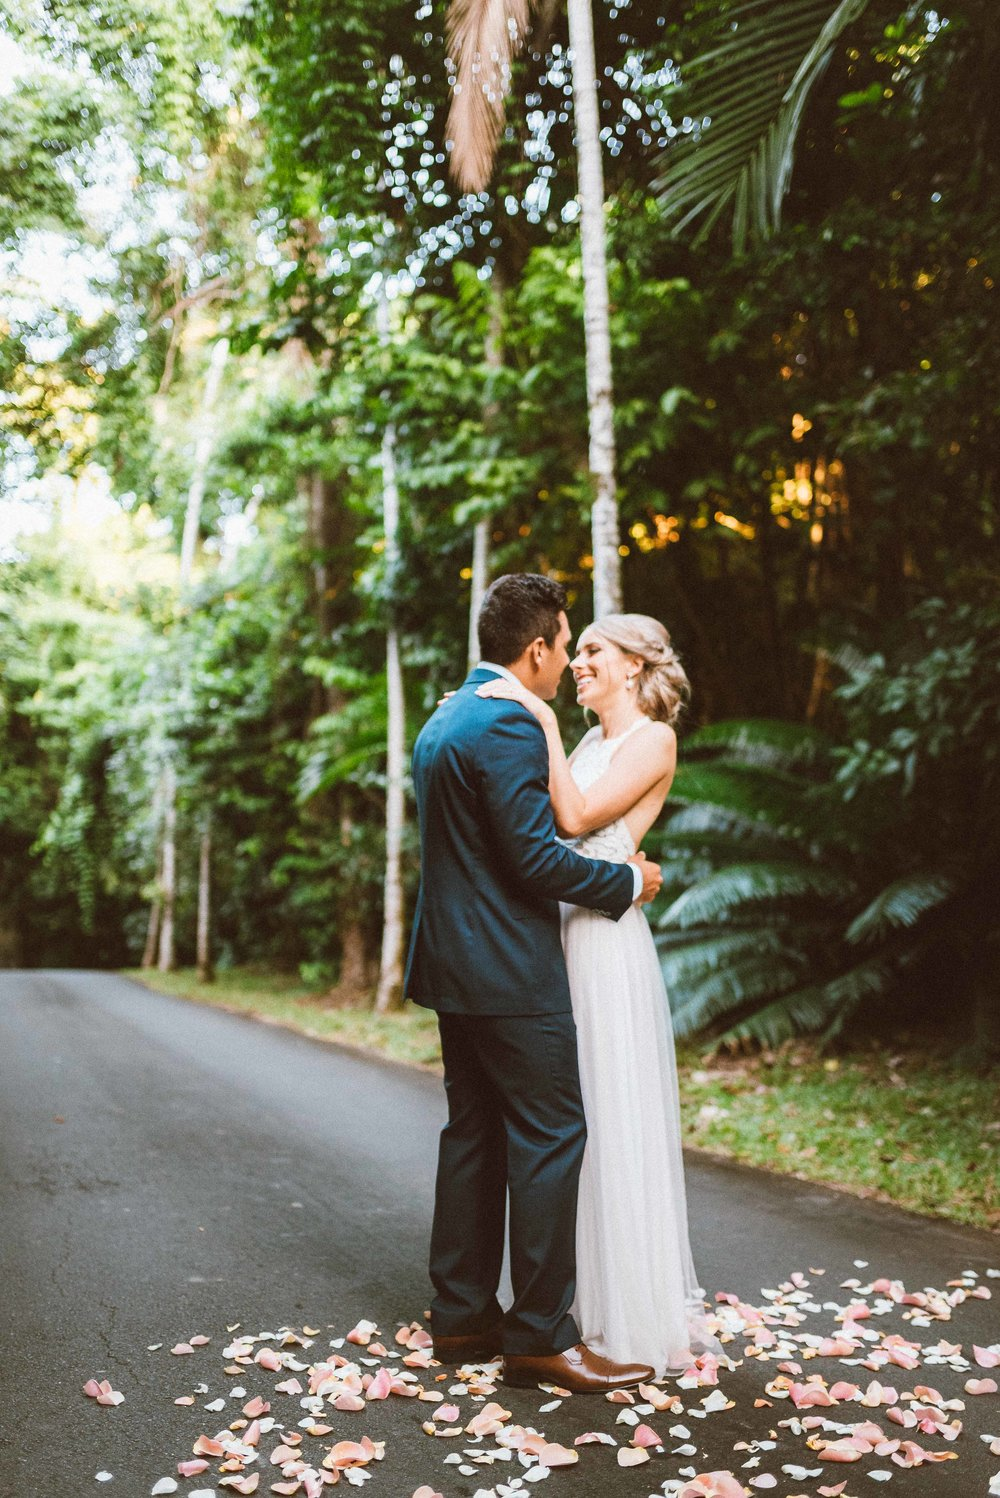 Blog - Michael + Megan-47.jpg